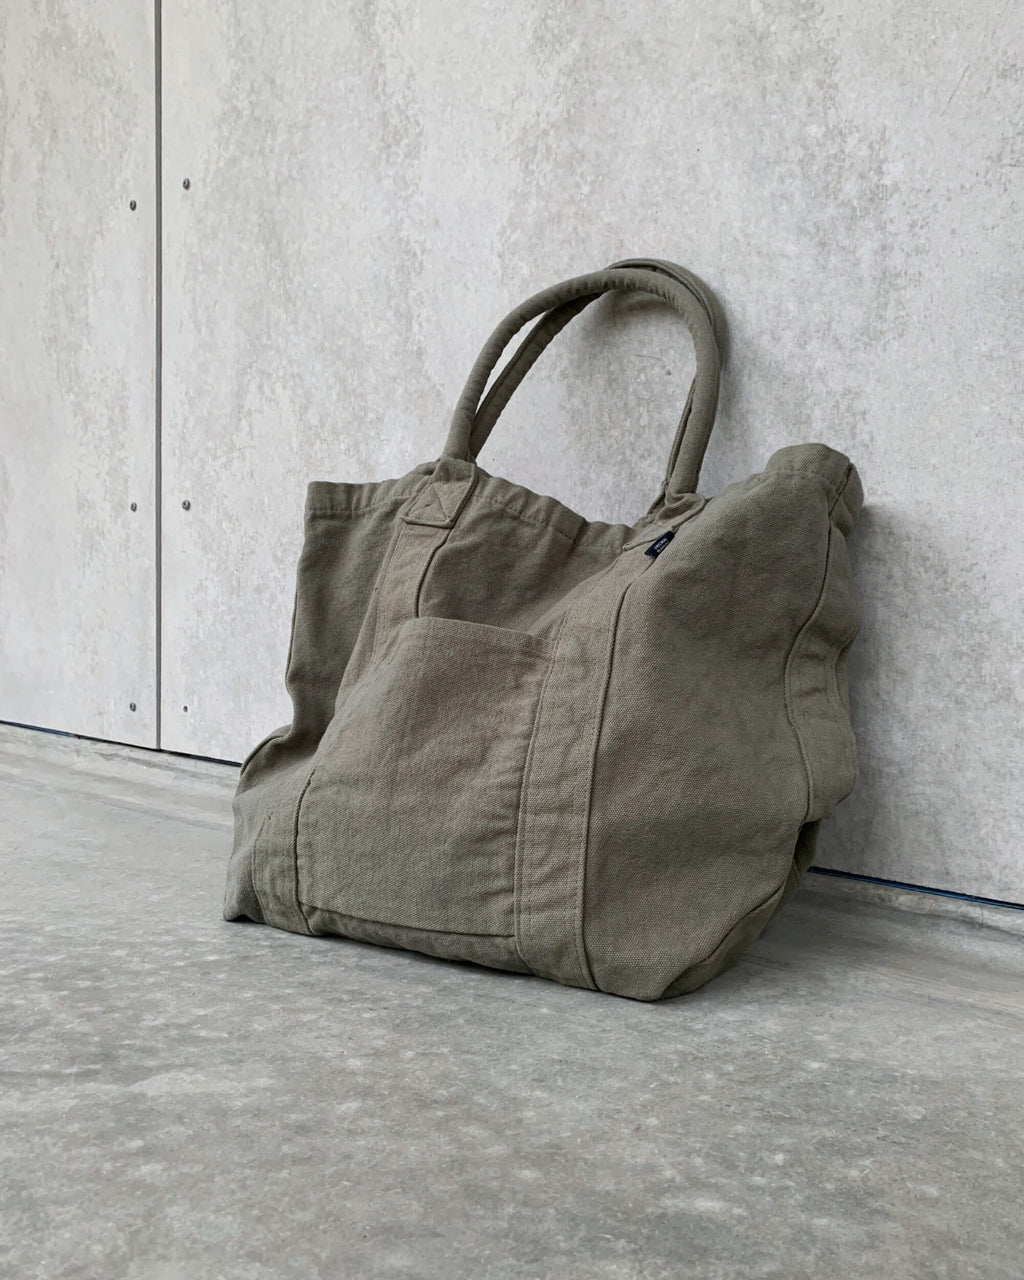 make up co. : washed canvas tote in khaki